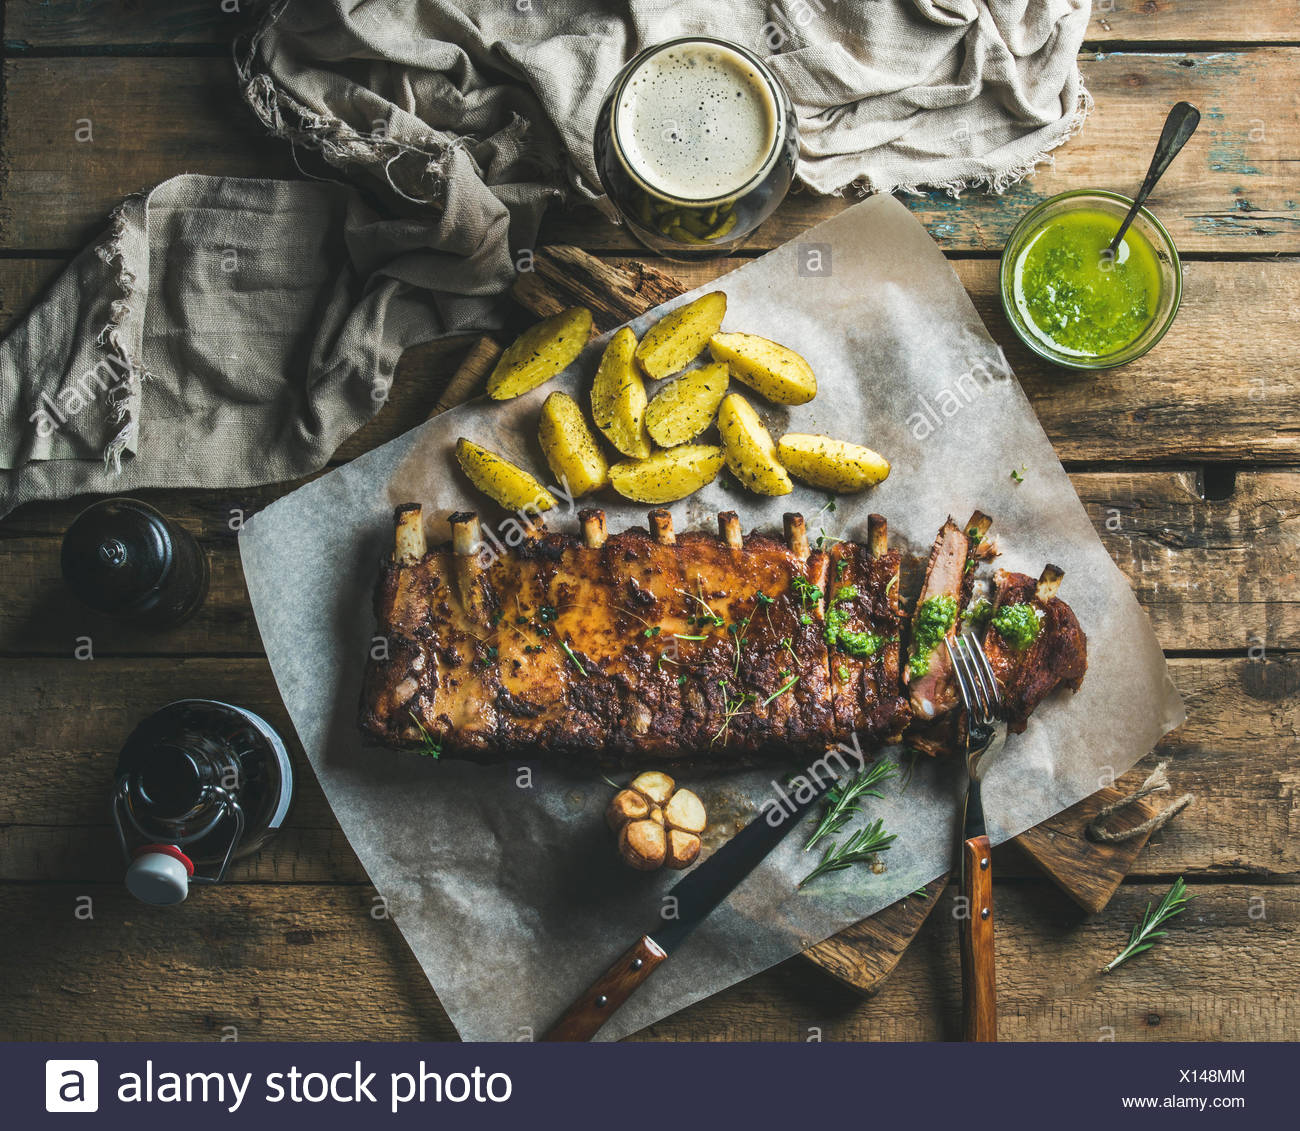 Roasted pork ribs partly cut into pieces with garlic, rosemary, green herb sauce, fried potato and dark beer on rustic wooden ba - Stock Image